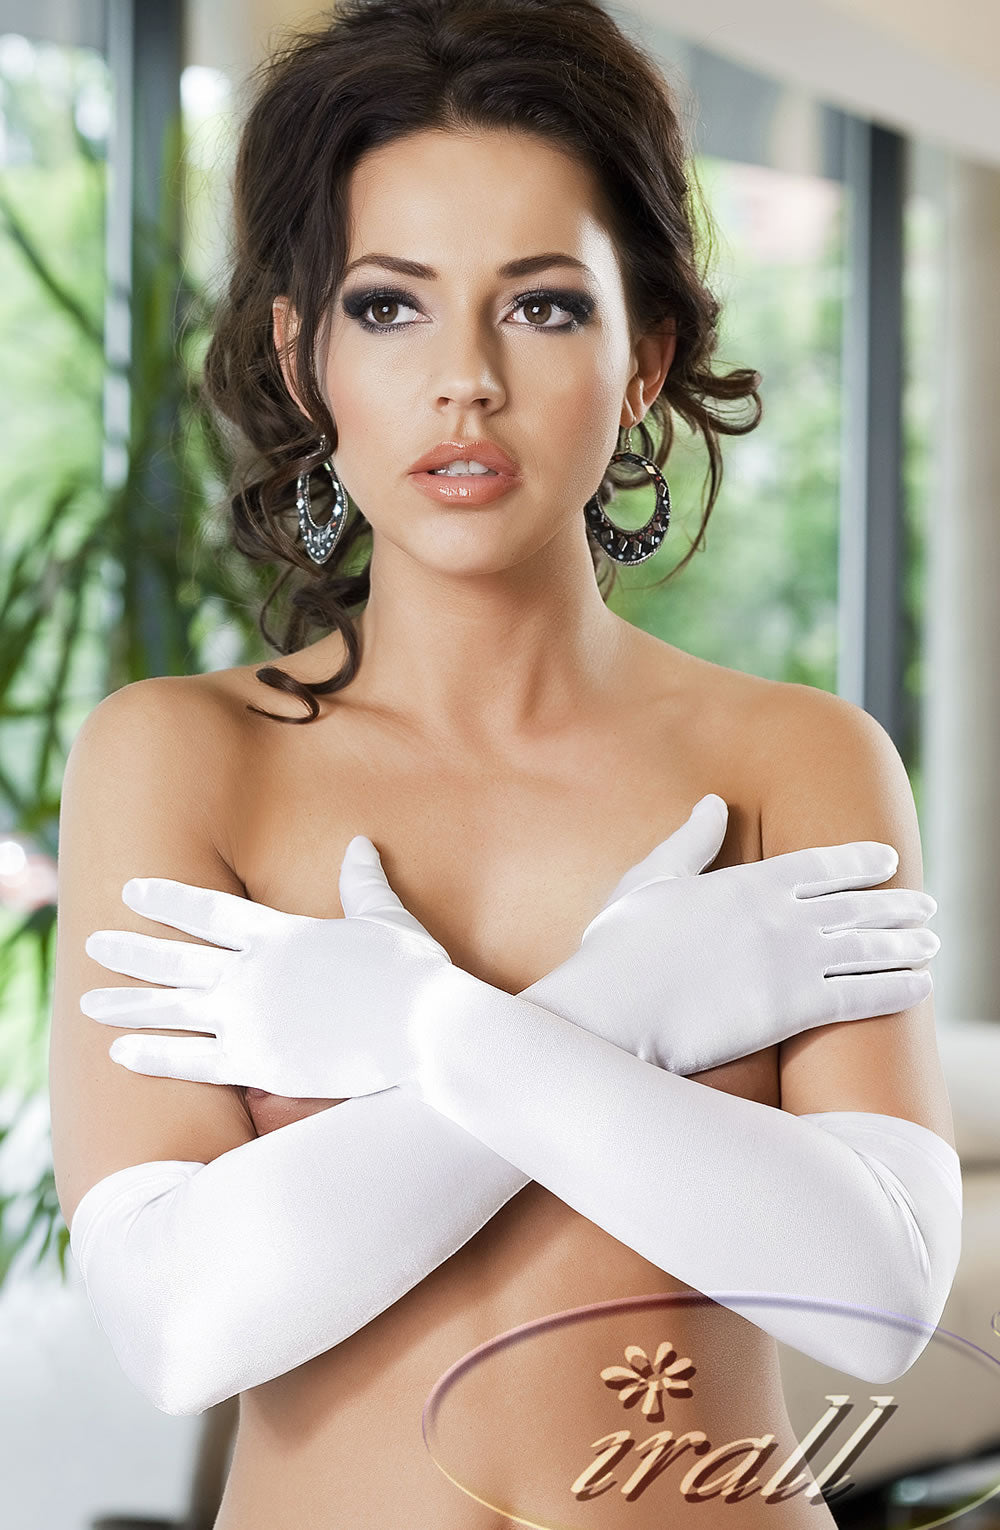 Irall Erotic Astrid Gloves White